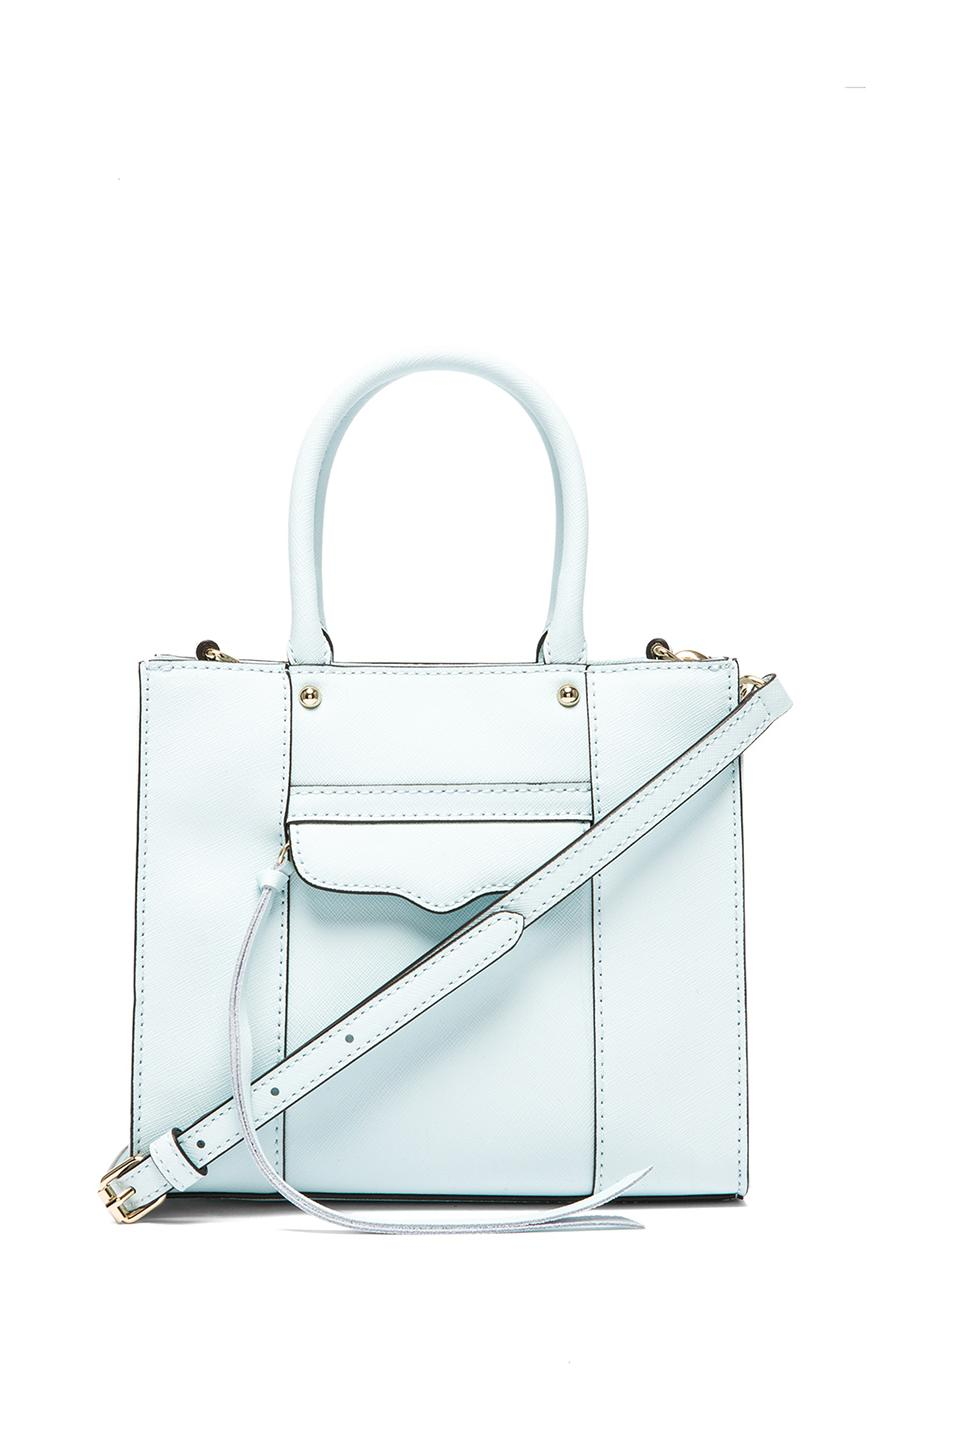 Rebecca Minkoff MAB Tote Mini in Light Turq